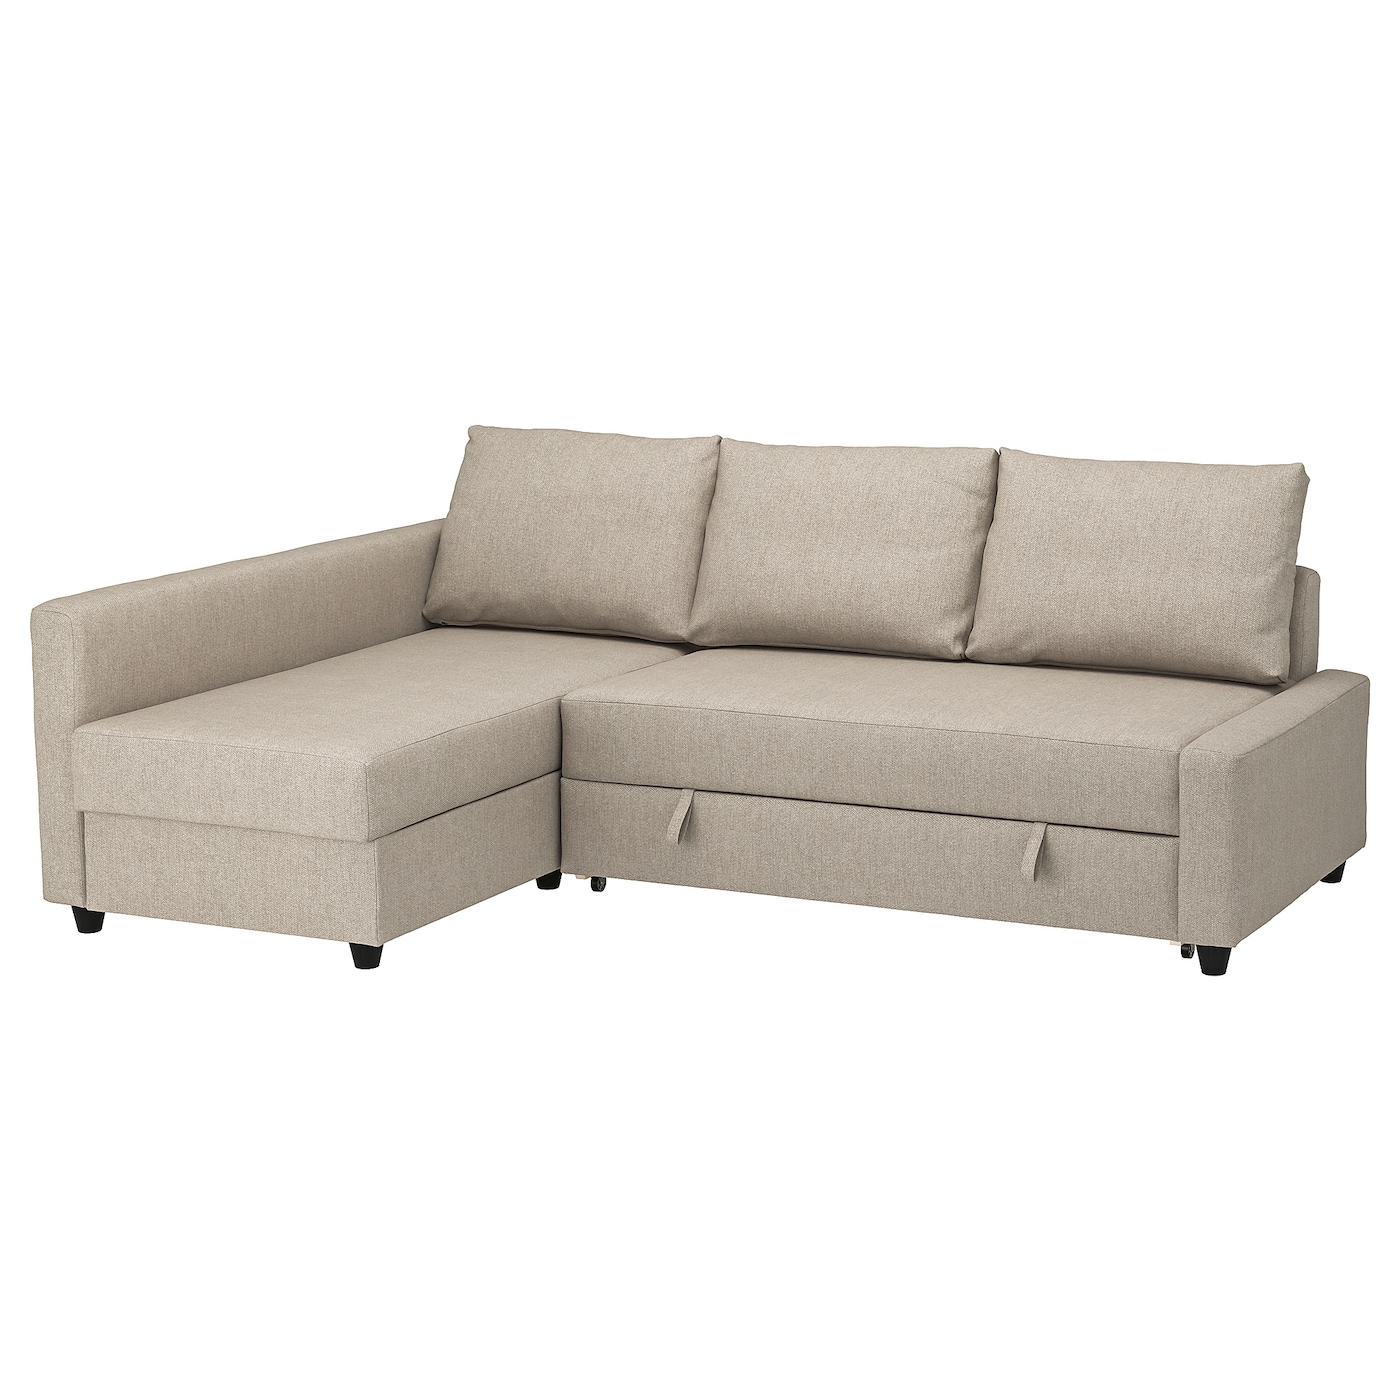 Corner sofa-bed with storage FRIHETEN Hyllie beige